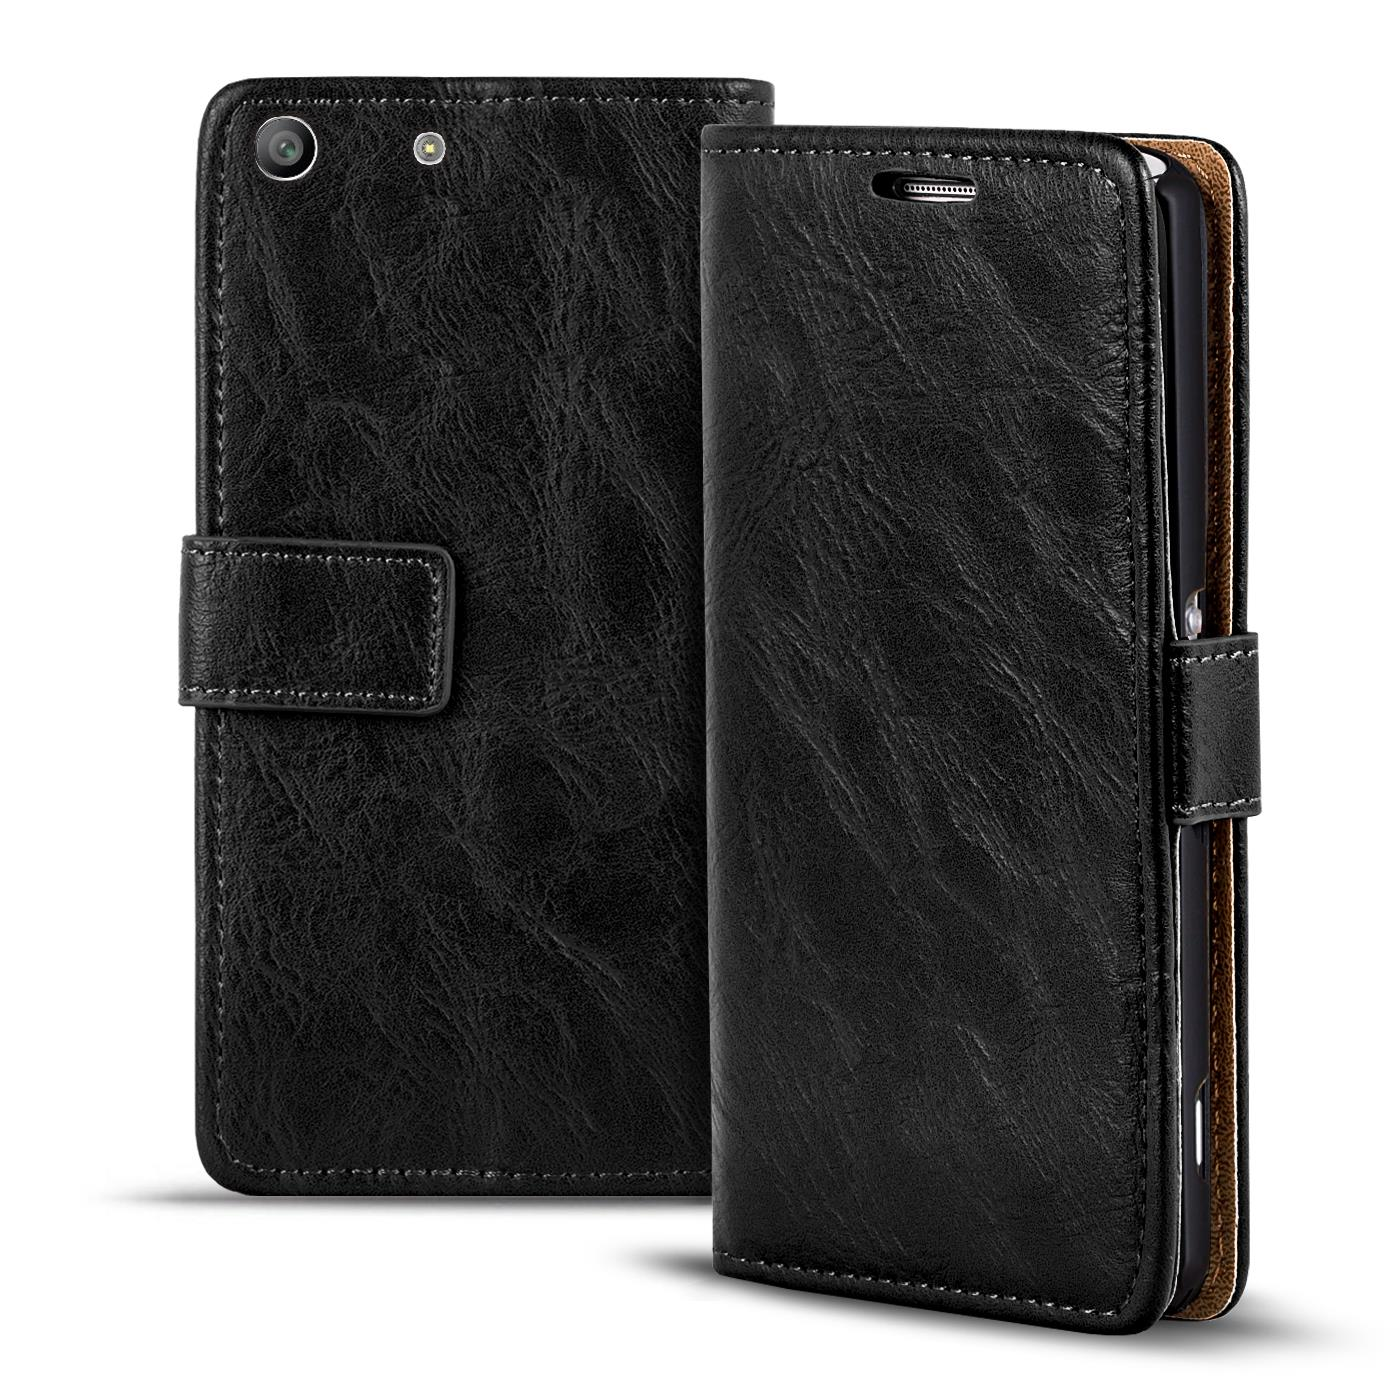 buy popular c212f 020d0 Details about Pouch Sony Xperia M5 Flip Cover Case